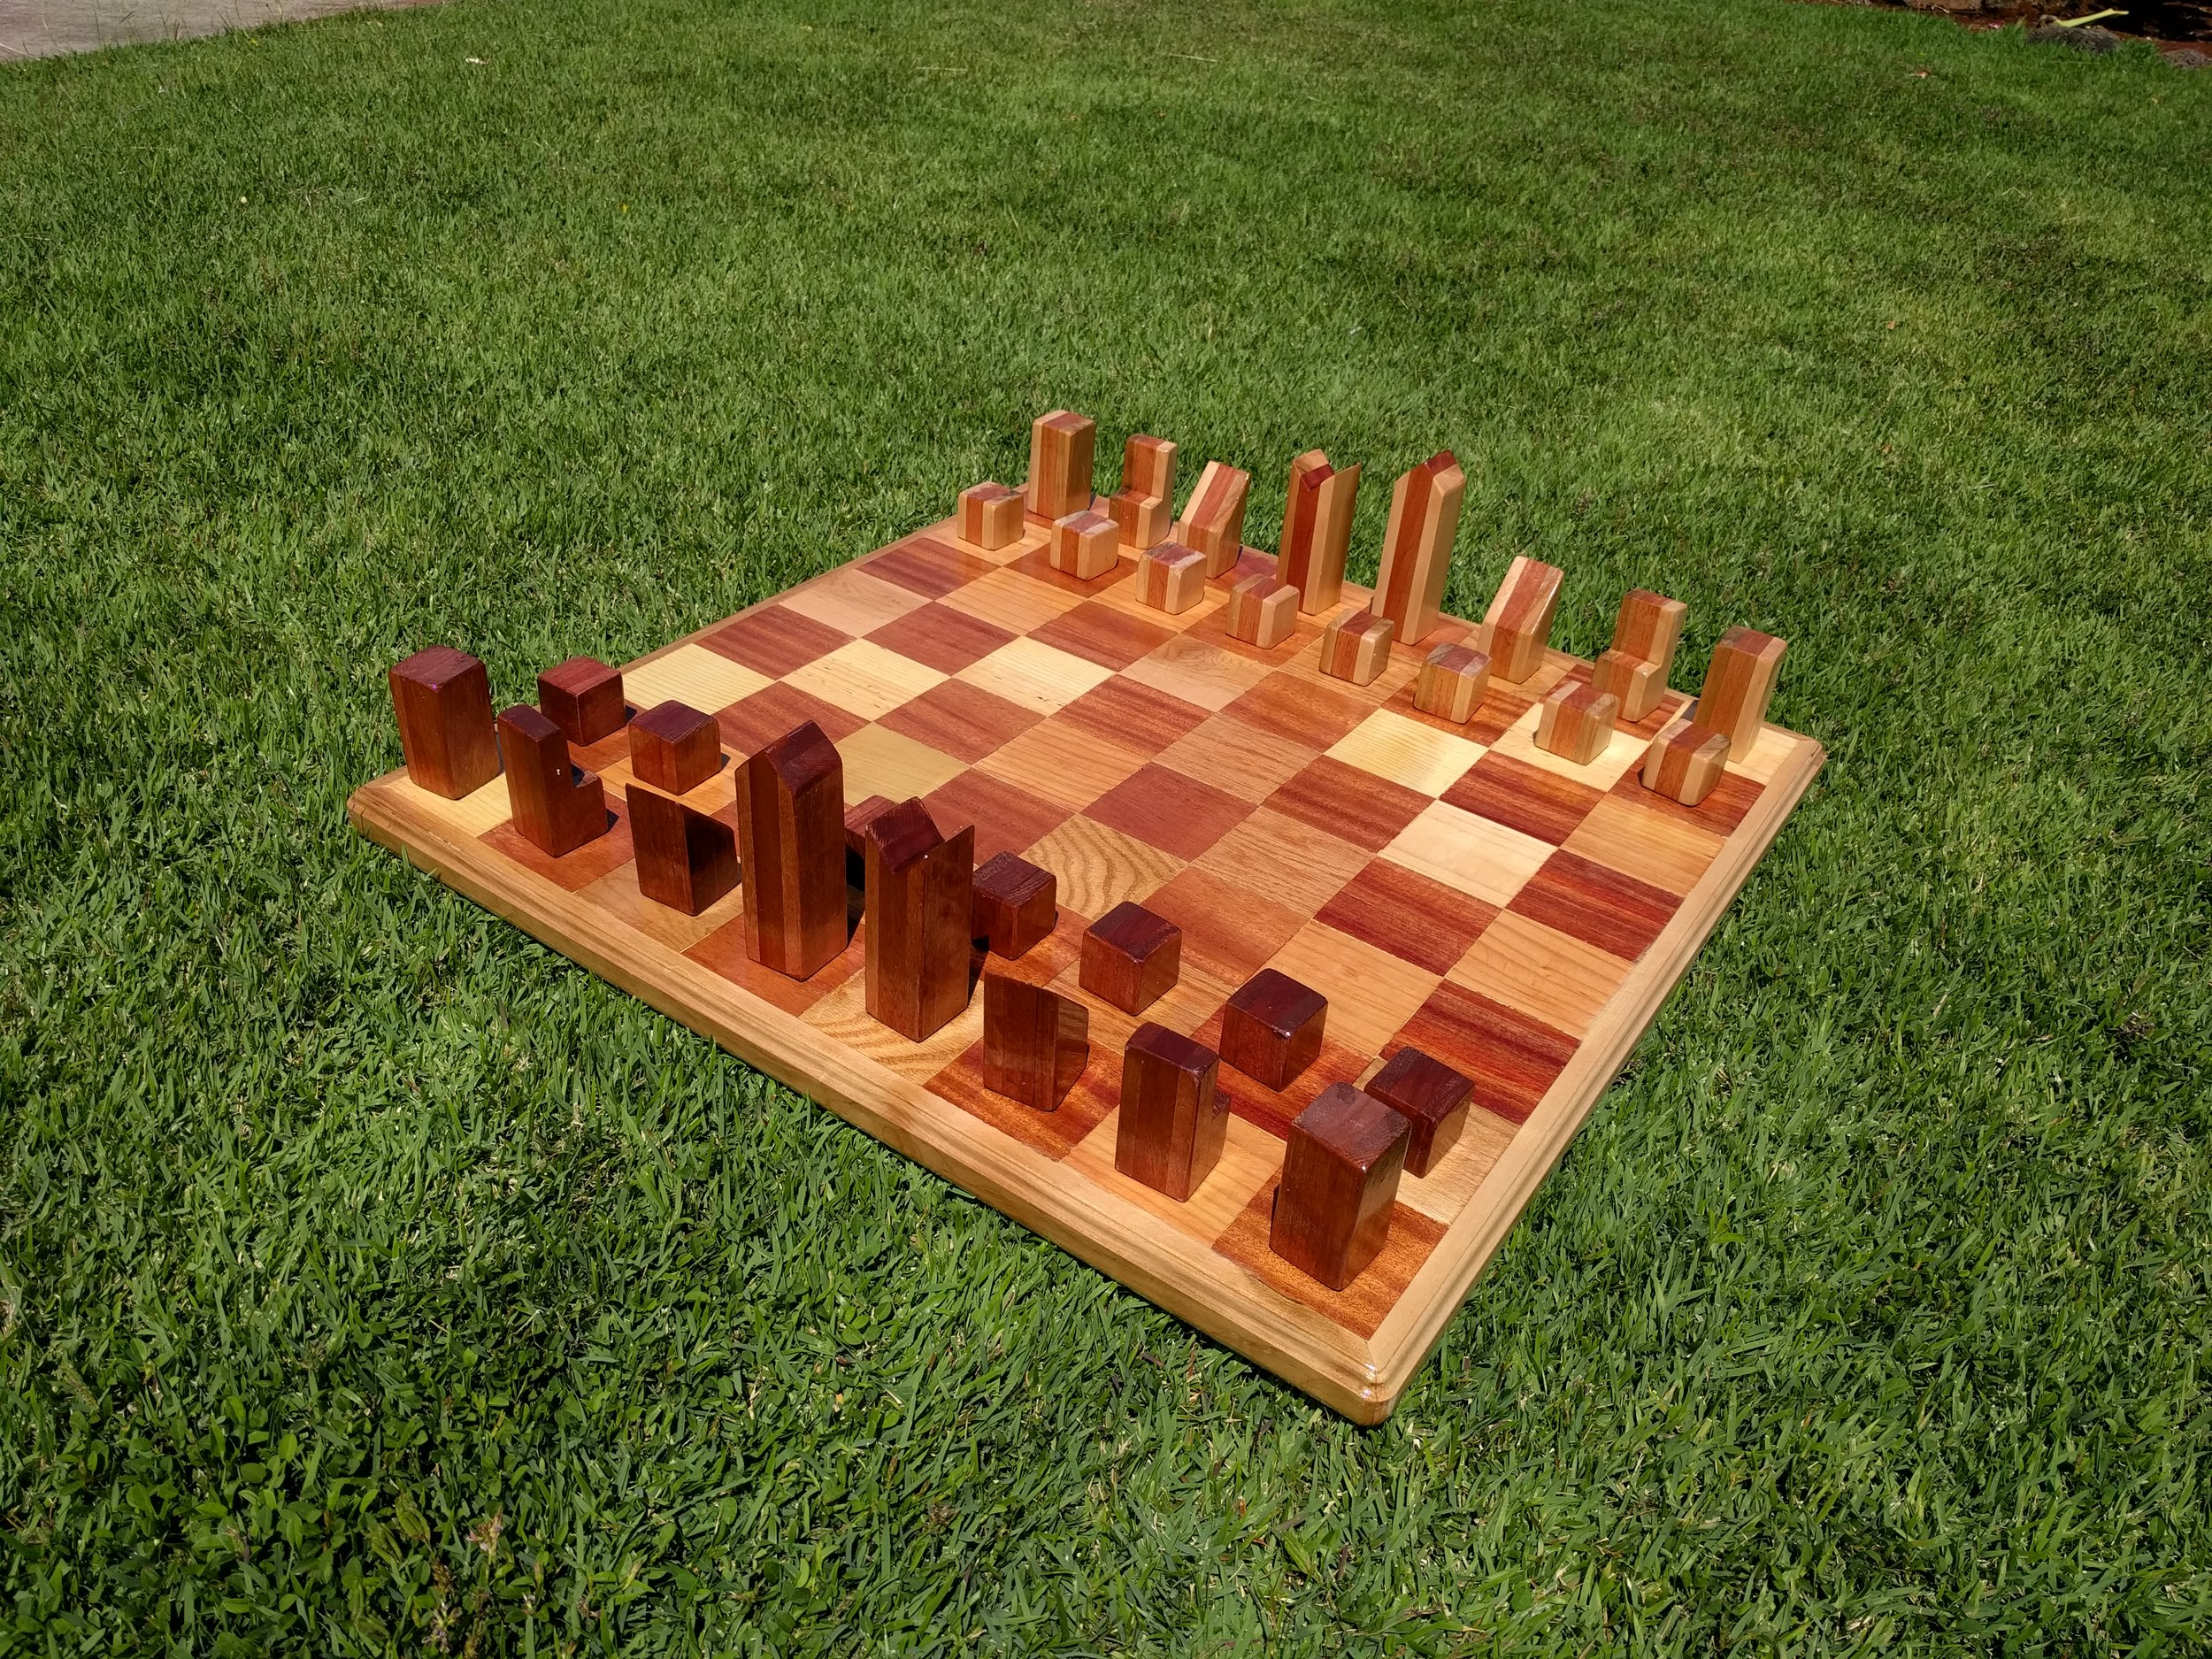 Chess / Checkers DIY - Wooden chess board, with geometric shapes. Step by step DIY